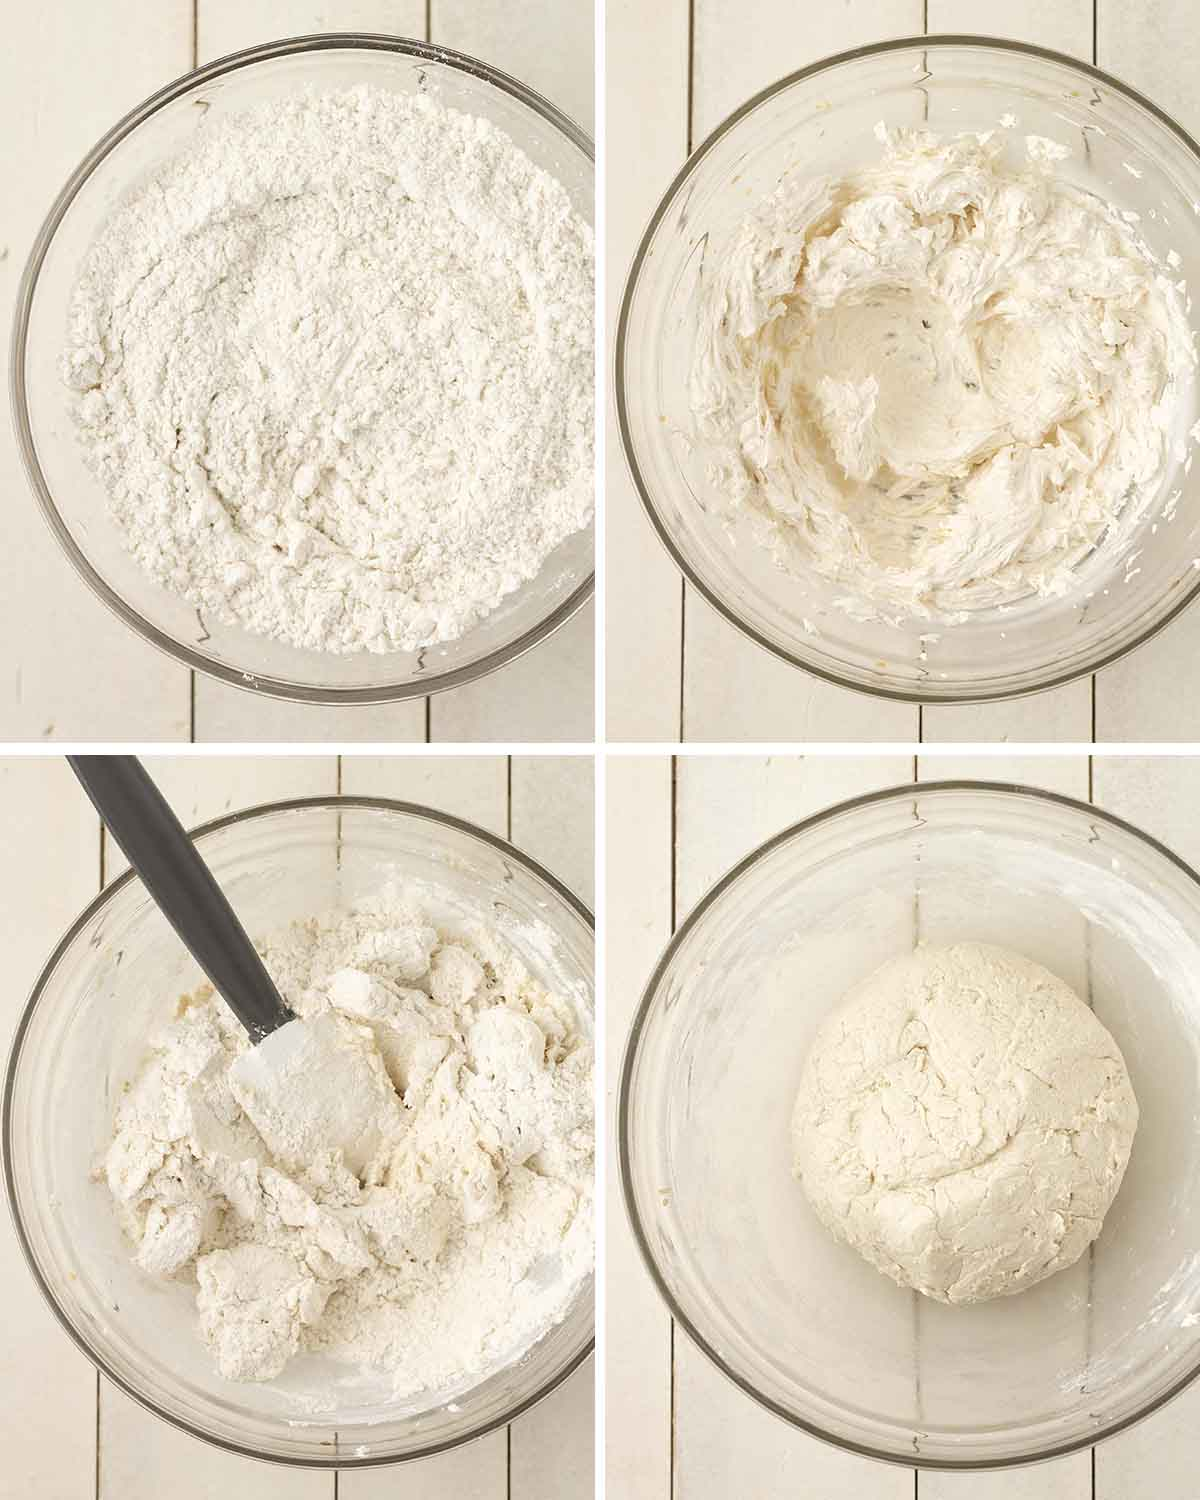 A collage of four images showing the first sequence of steps needed to make dairy-free egg-free sugar cookies.